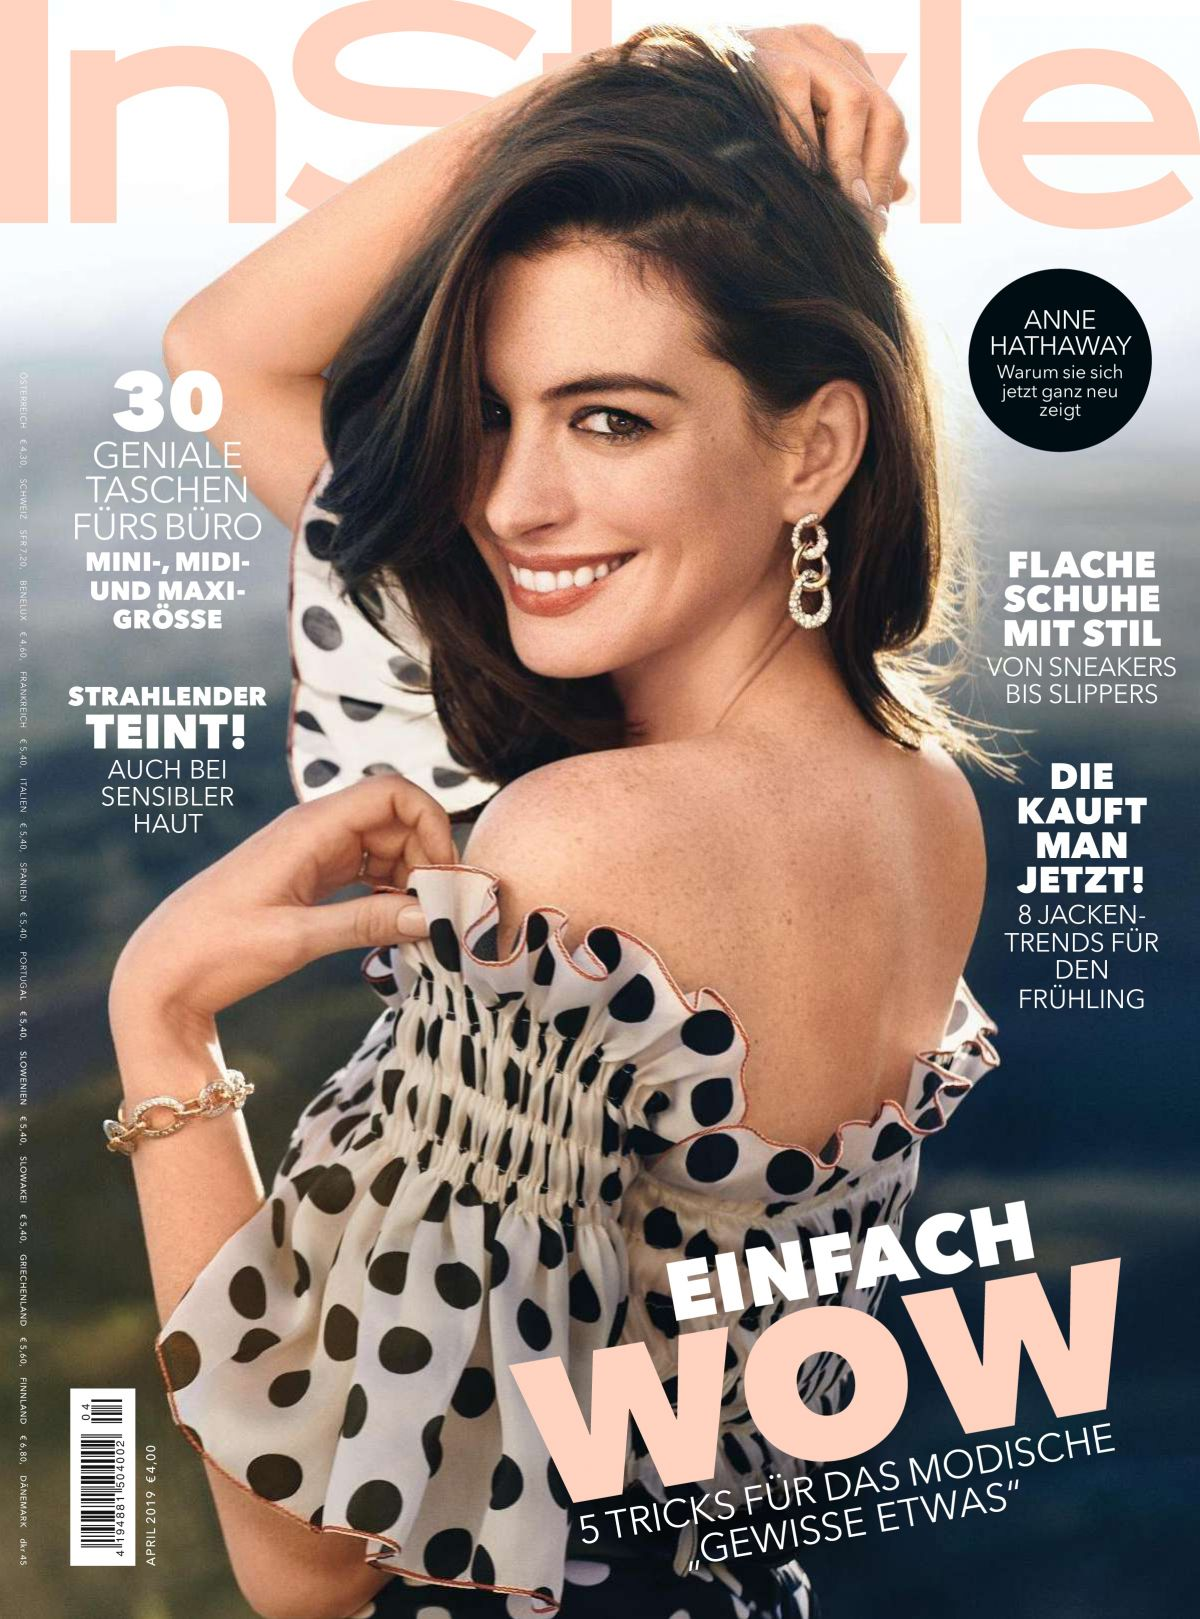 Instyle Magazine Us: ANNE HATHAWAY In Instyle Magazine, Germany April 2019